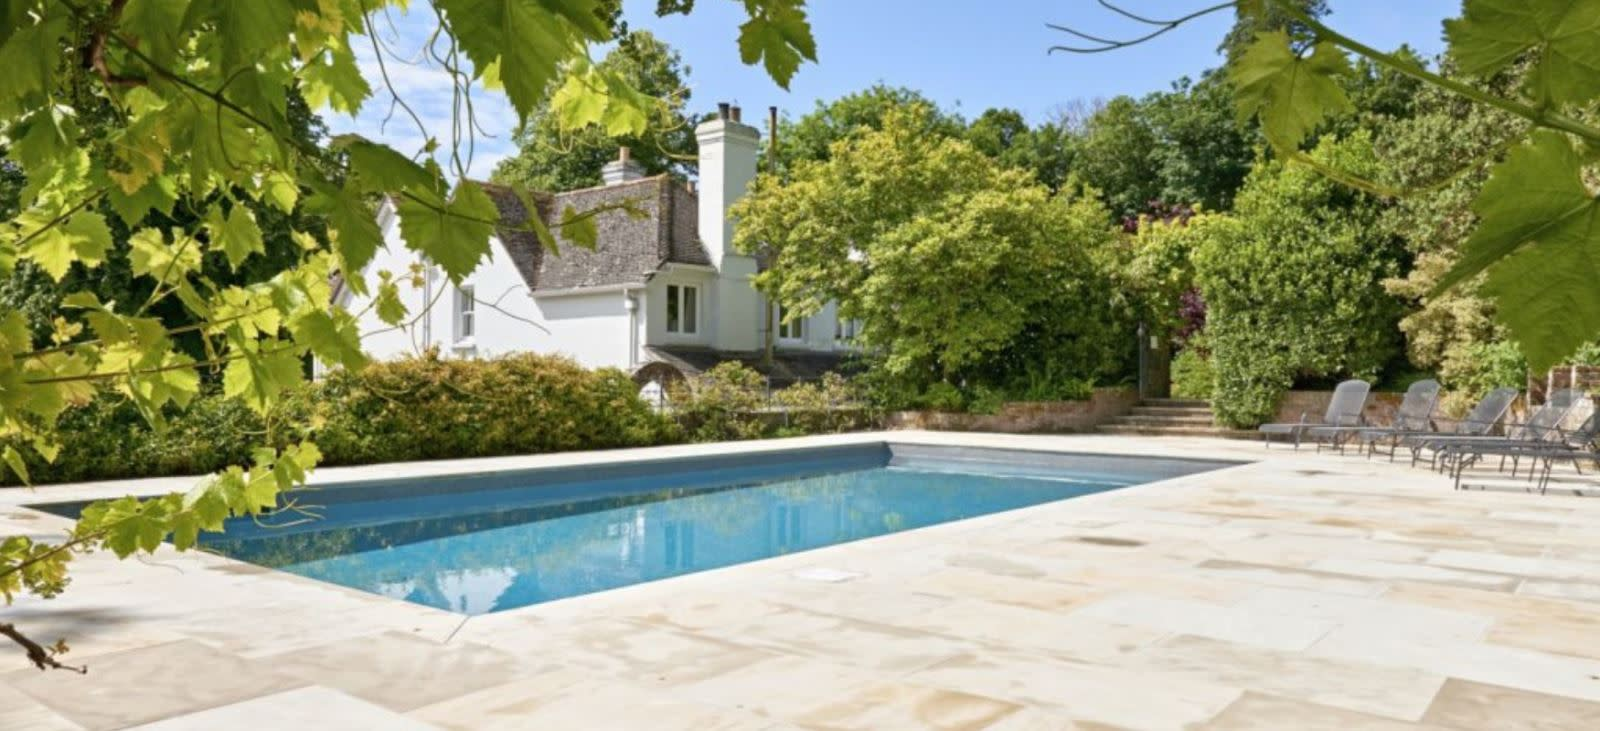 Outdoor swimming pool at The Lindens - Lulworth Holiday Cottages in Dorset